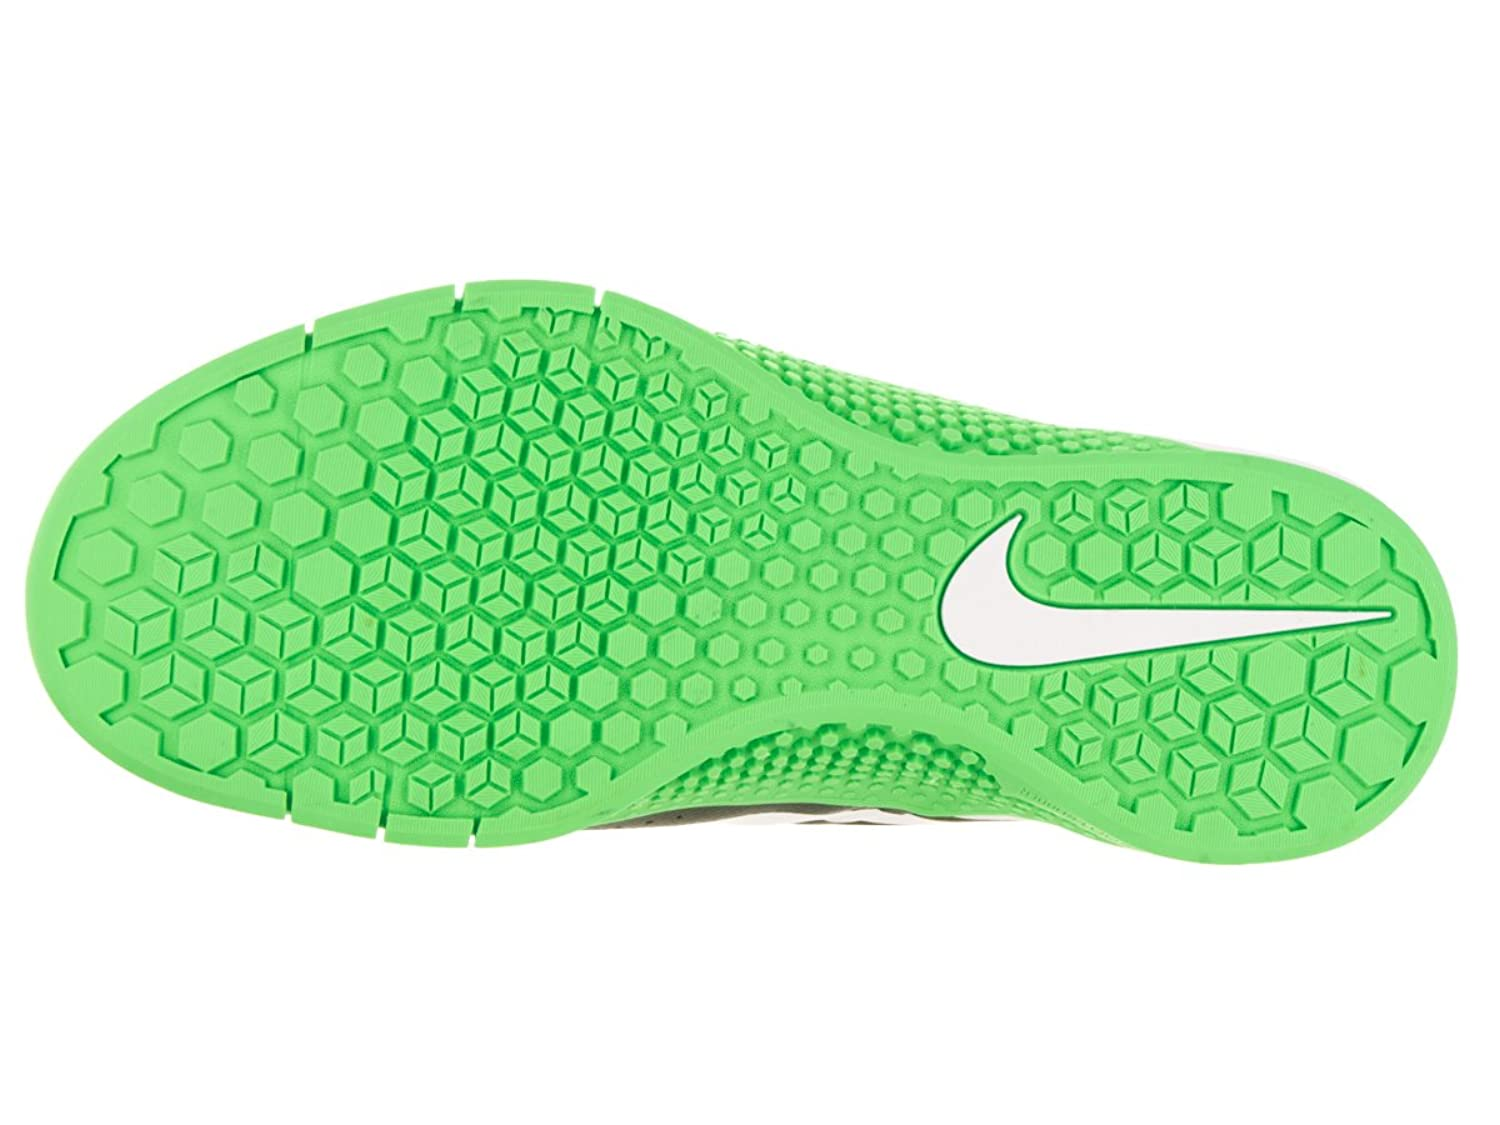 Nike Men's Metcon 1 Cargo Khaki/White/Green Strike Training Shoe 9 Men US:  Buy Online at Low Prices in India - Amazon.in